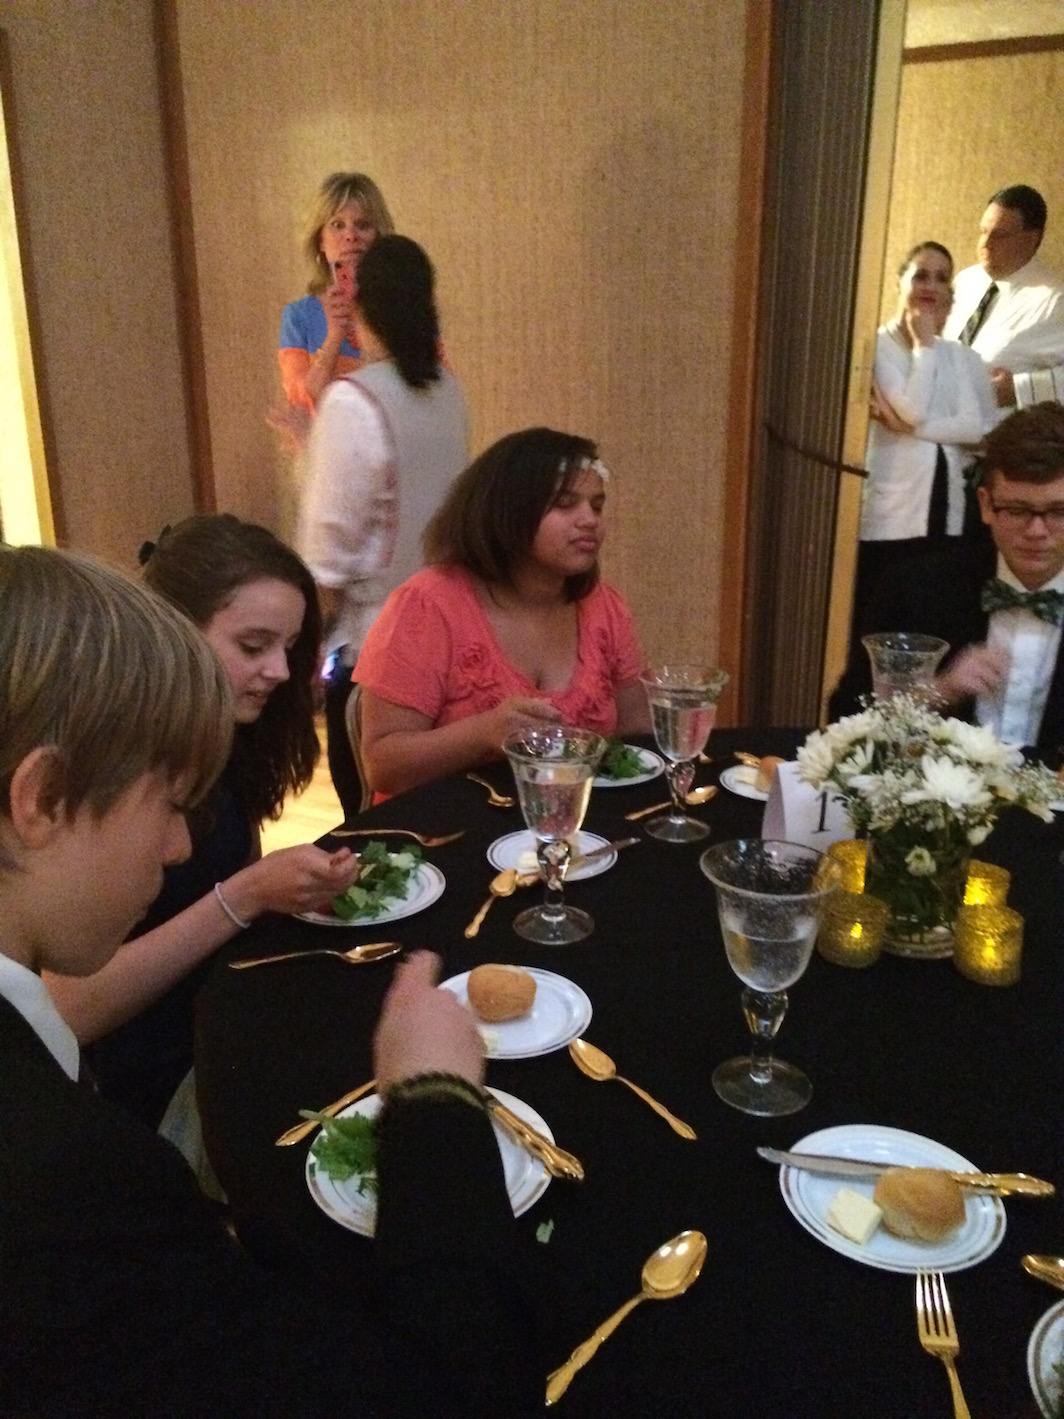 Kc1 Mutual Activity Yw And Ym Etiquette Dinner